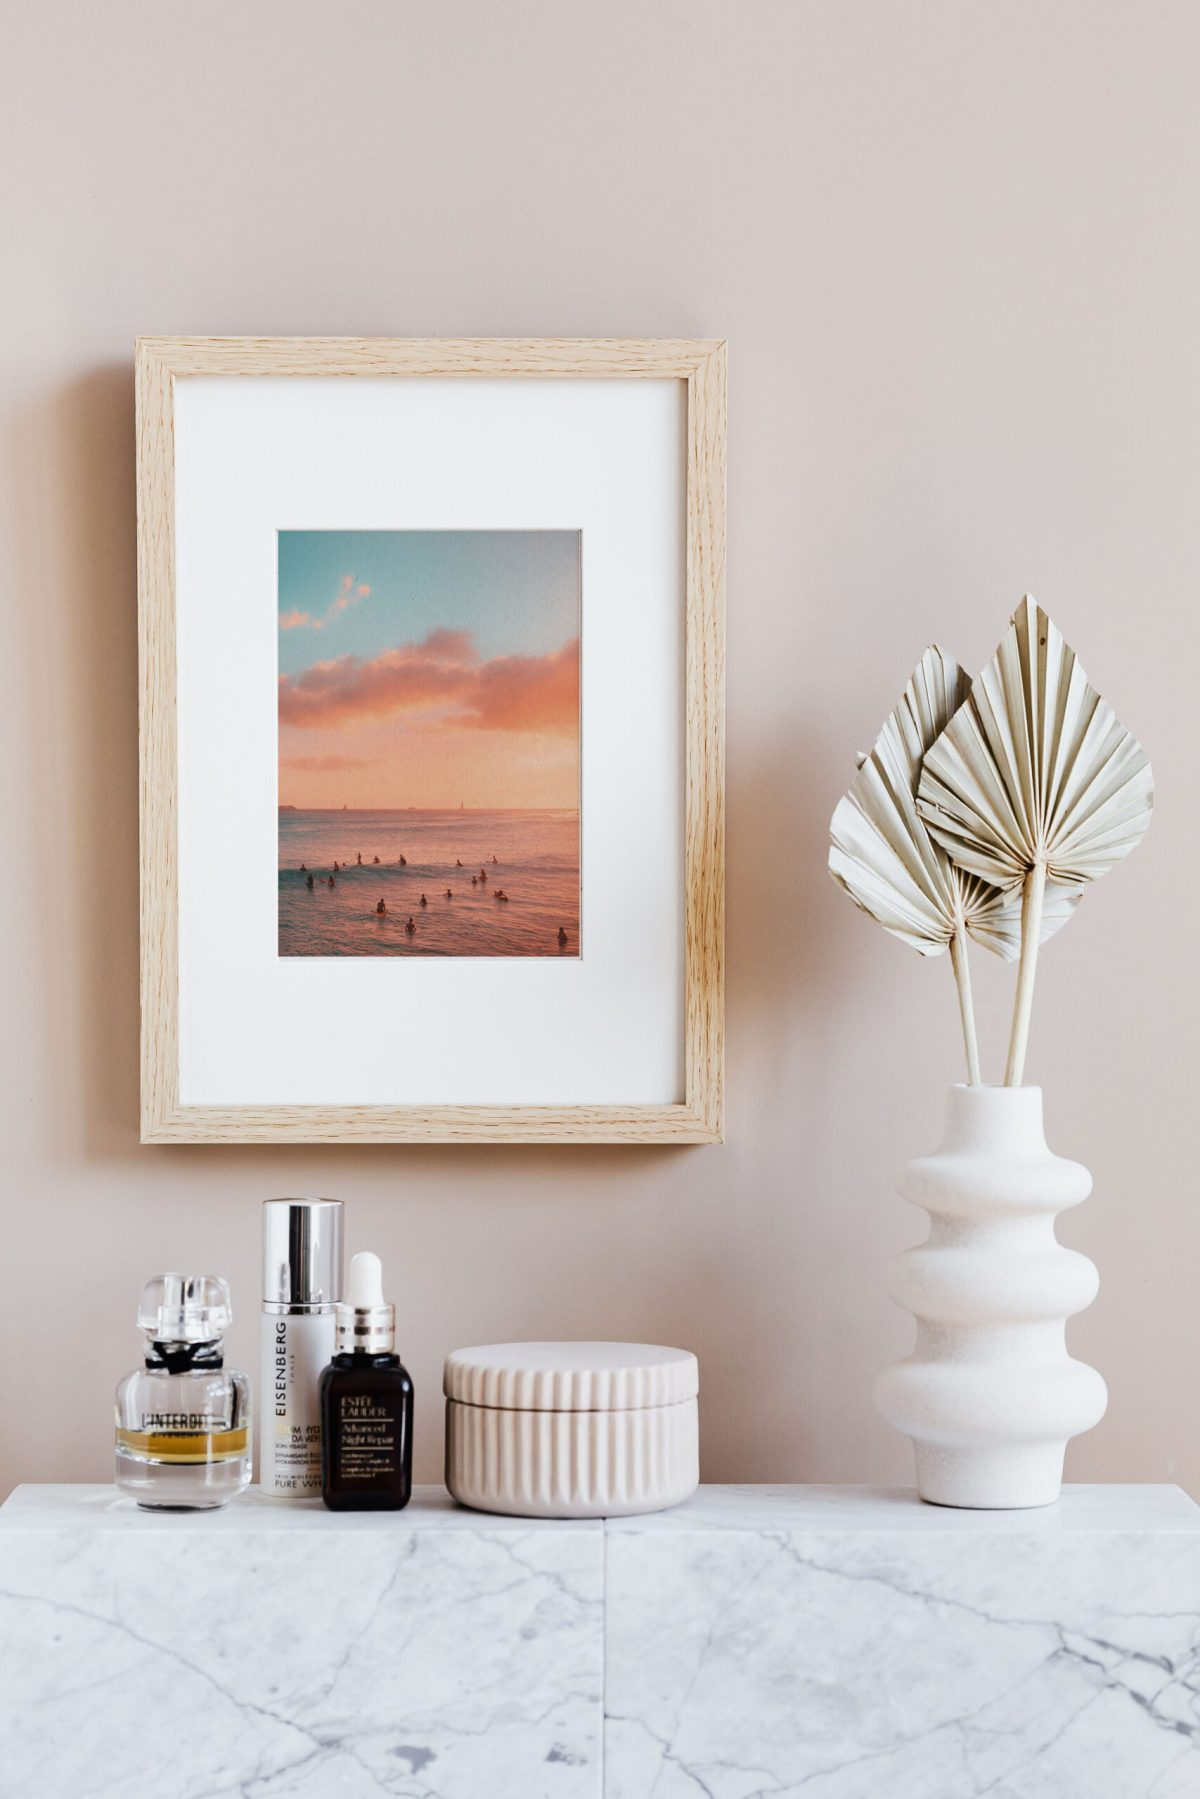 Pink sunset beach surf photography on canvas